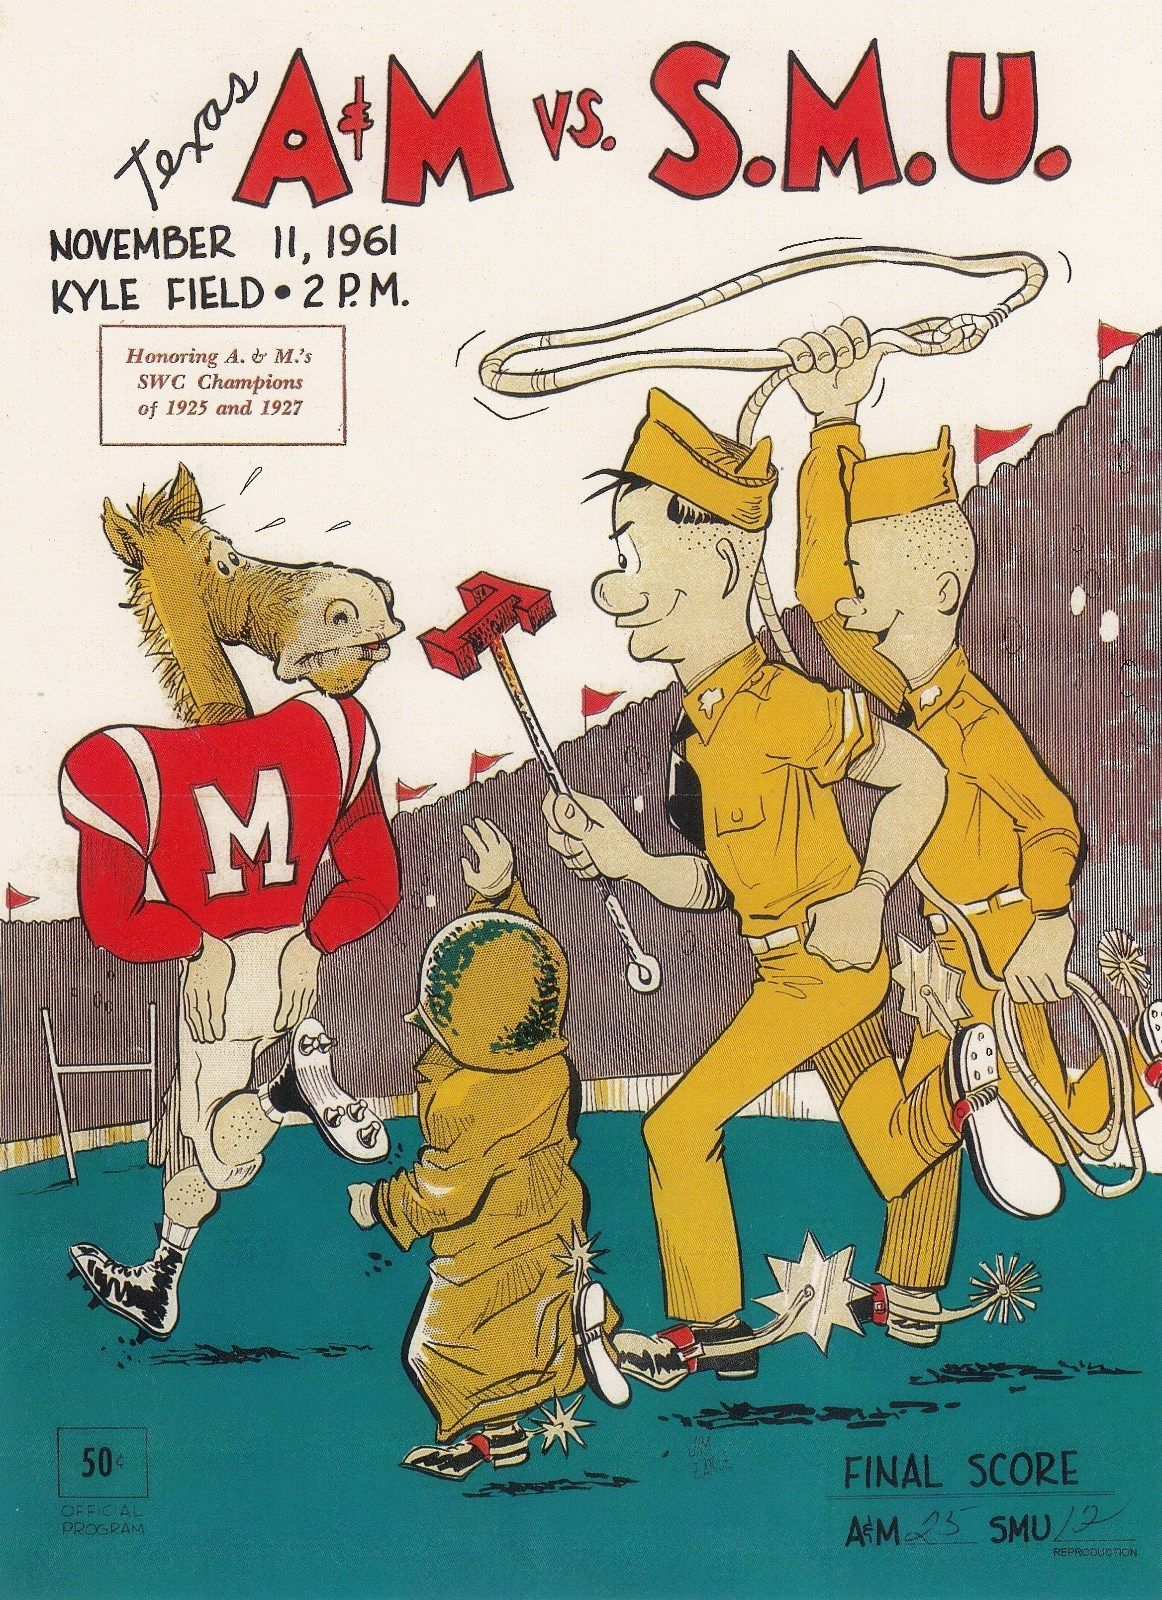 1961 Game Program between Texas A&M vs SMU at Kyle Field